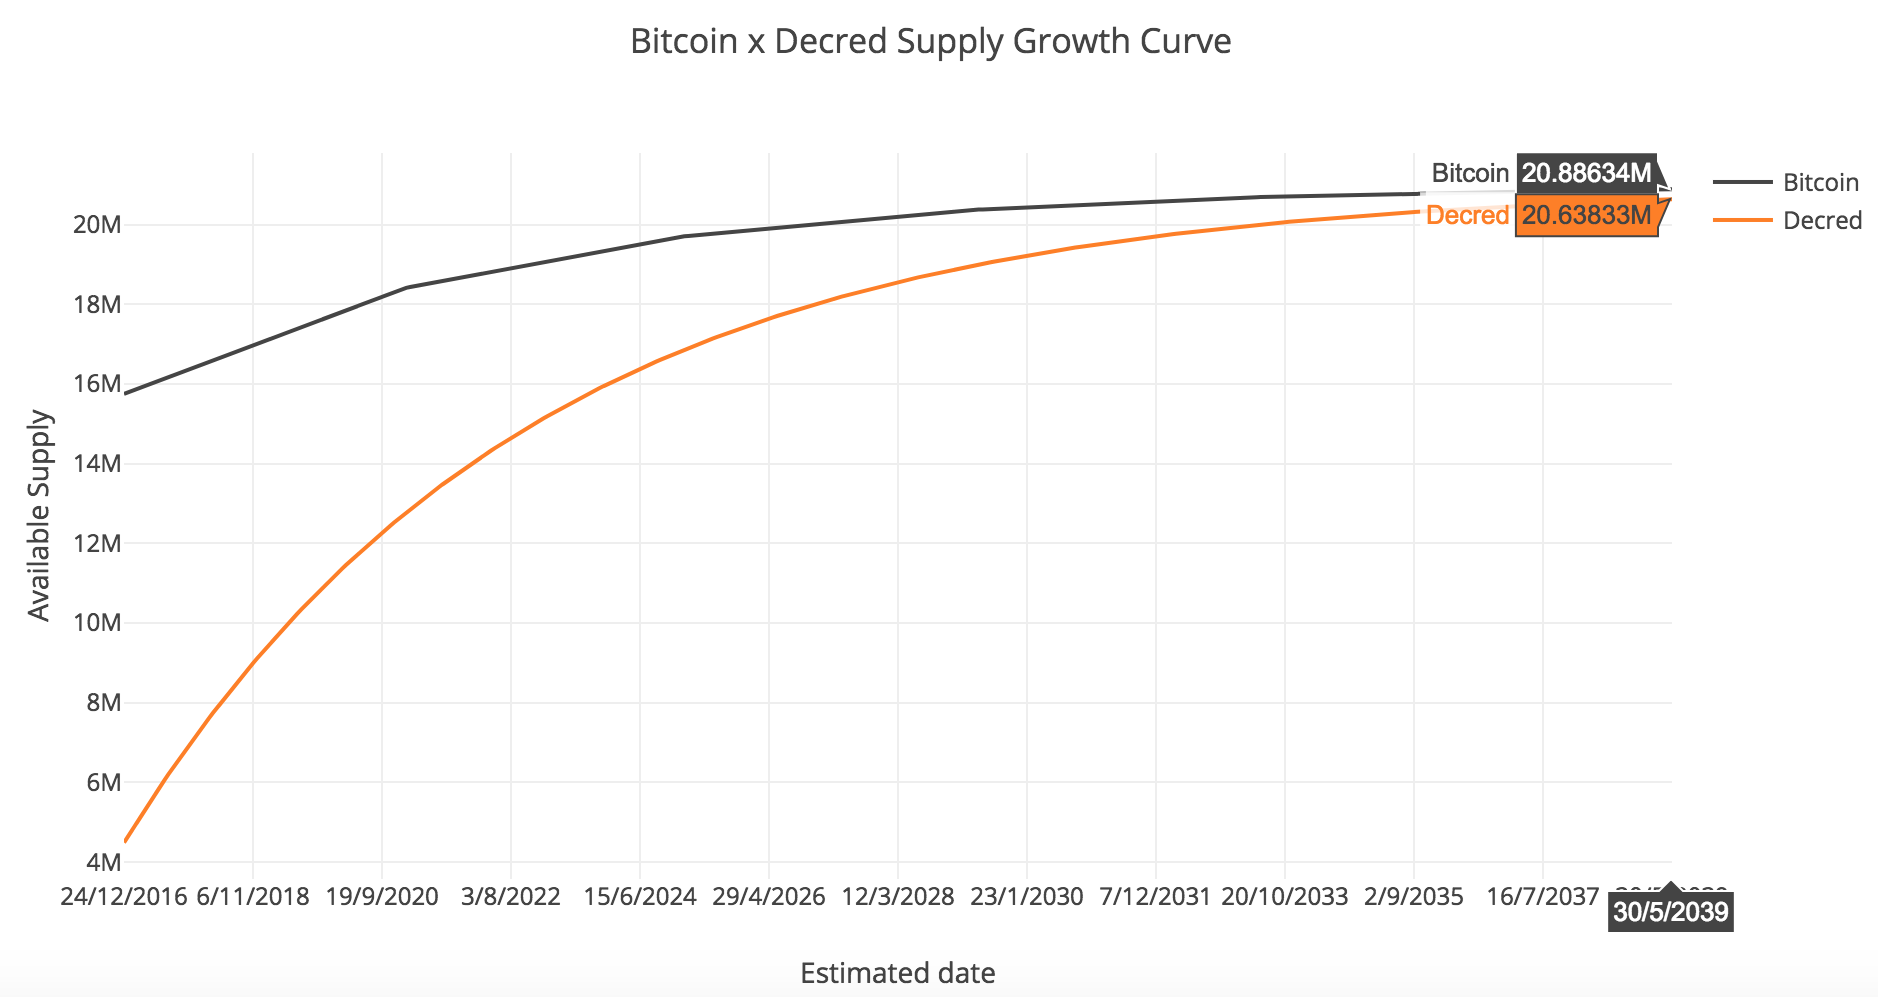 Figure 8 - Approximate comparison between Bitcoin and Decred supply growth curves